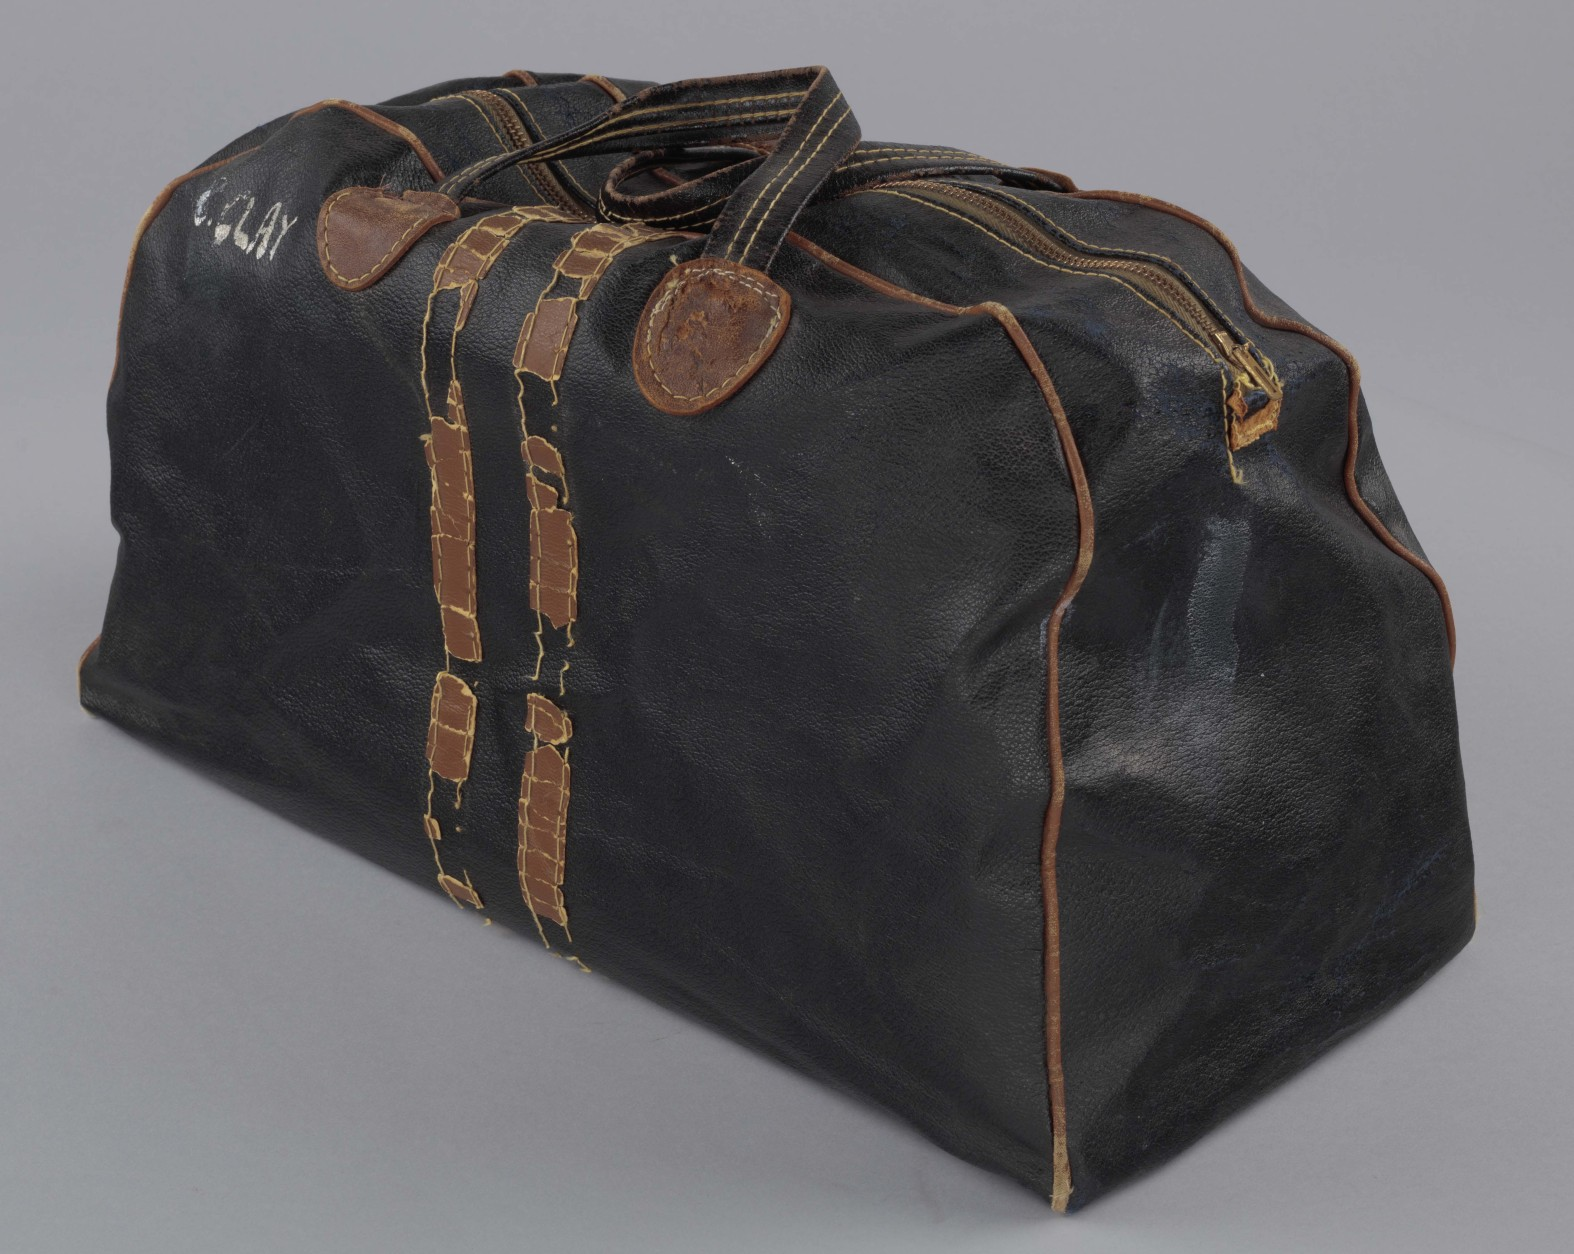 The gym bag used by Muhammad Ali in the 1960s. (Courtesy Collection of the Smithsonian National Museum of African American History and Culture)